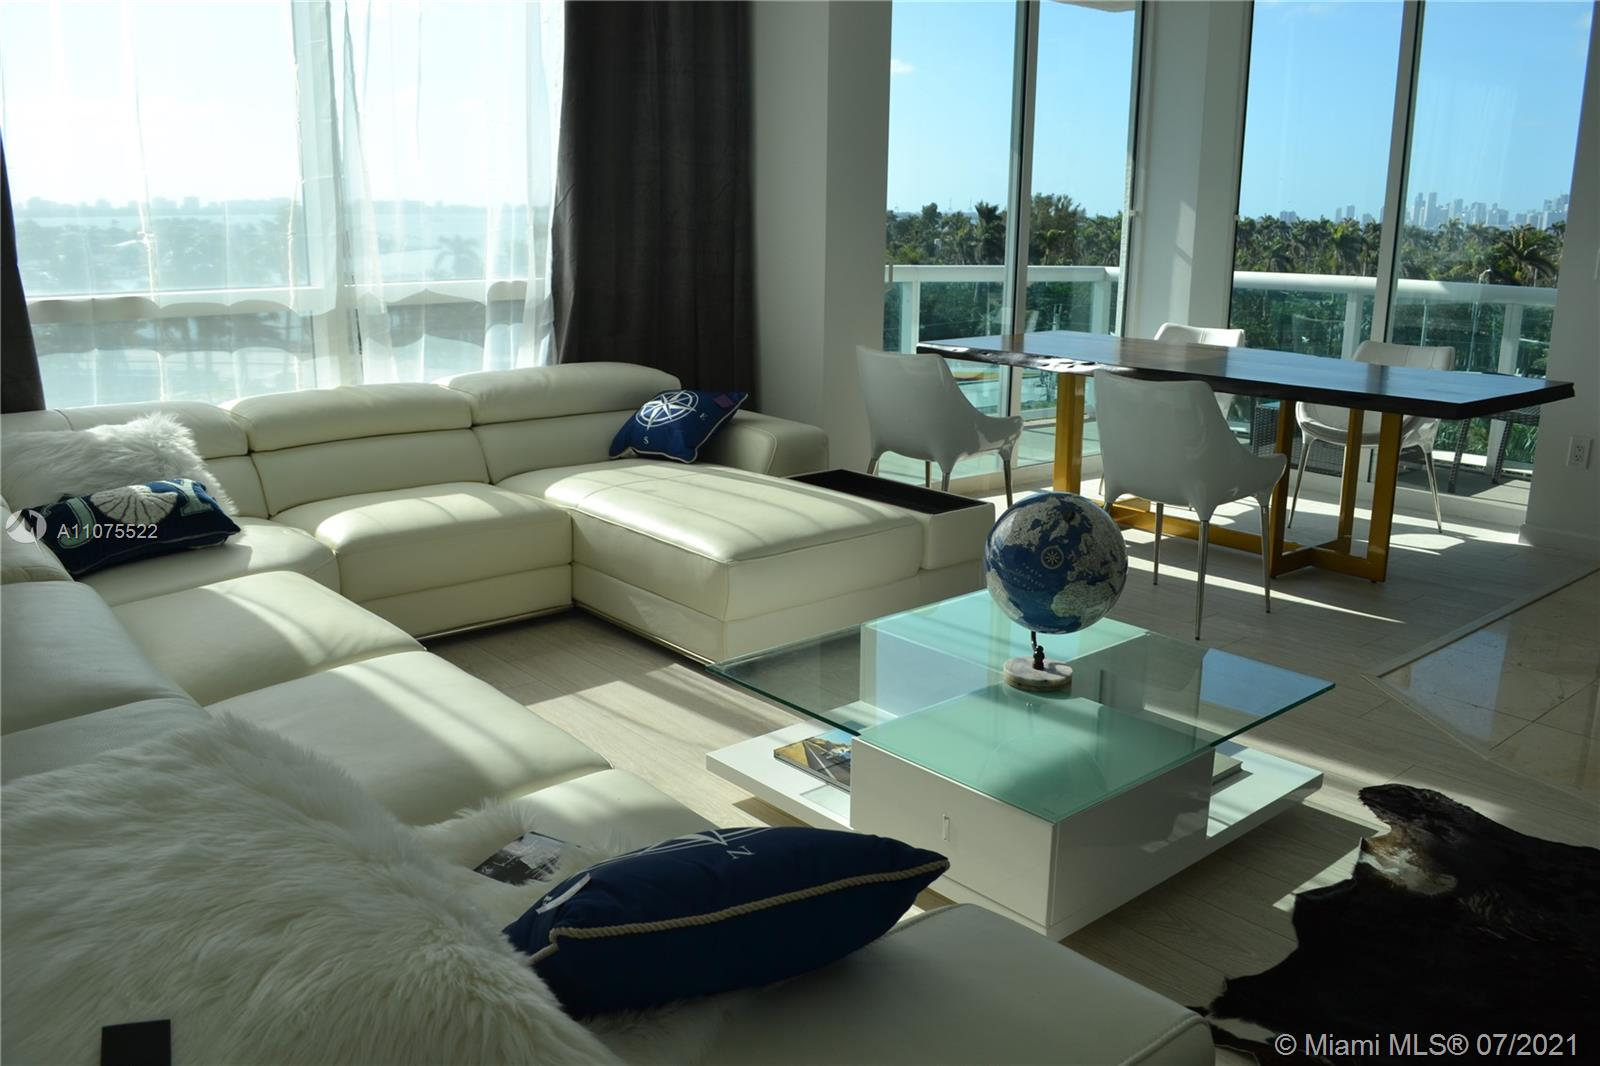 Best line in the building. Amazing floor plan, 1552 sq. ft, corner unit with ocean views from each room in luxury 360 building on the water. Light and bright, 2 huge balconies with Miami Skyline. 2 garage parking plus valet and guest parking, 5 star amenities including 2 heated pools, jacuzzi, gym, sauna, concierge, 24/7 security. True luxury resort style living. Marina for your Yacht. Fully equipped open Italian style kitchen with ss appliances and granite countertops. Washer and dryer inside Huge panoramic floor to ceiling impact proof windows and sliding balcony doors.